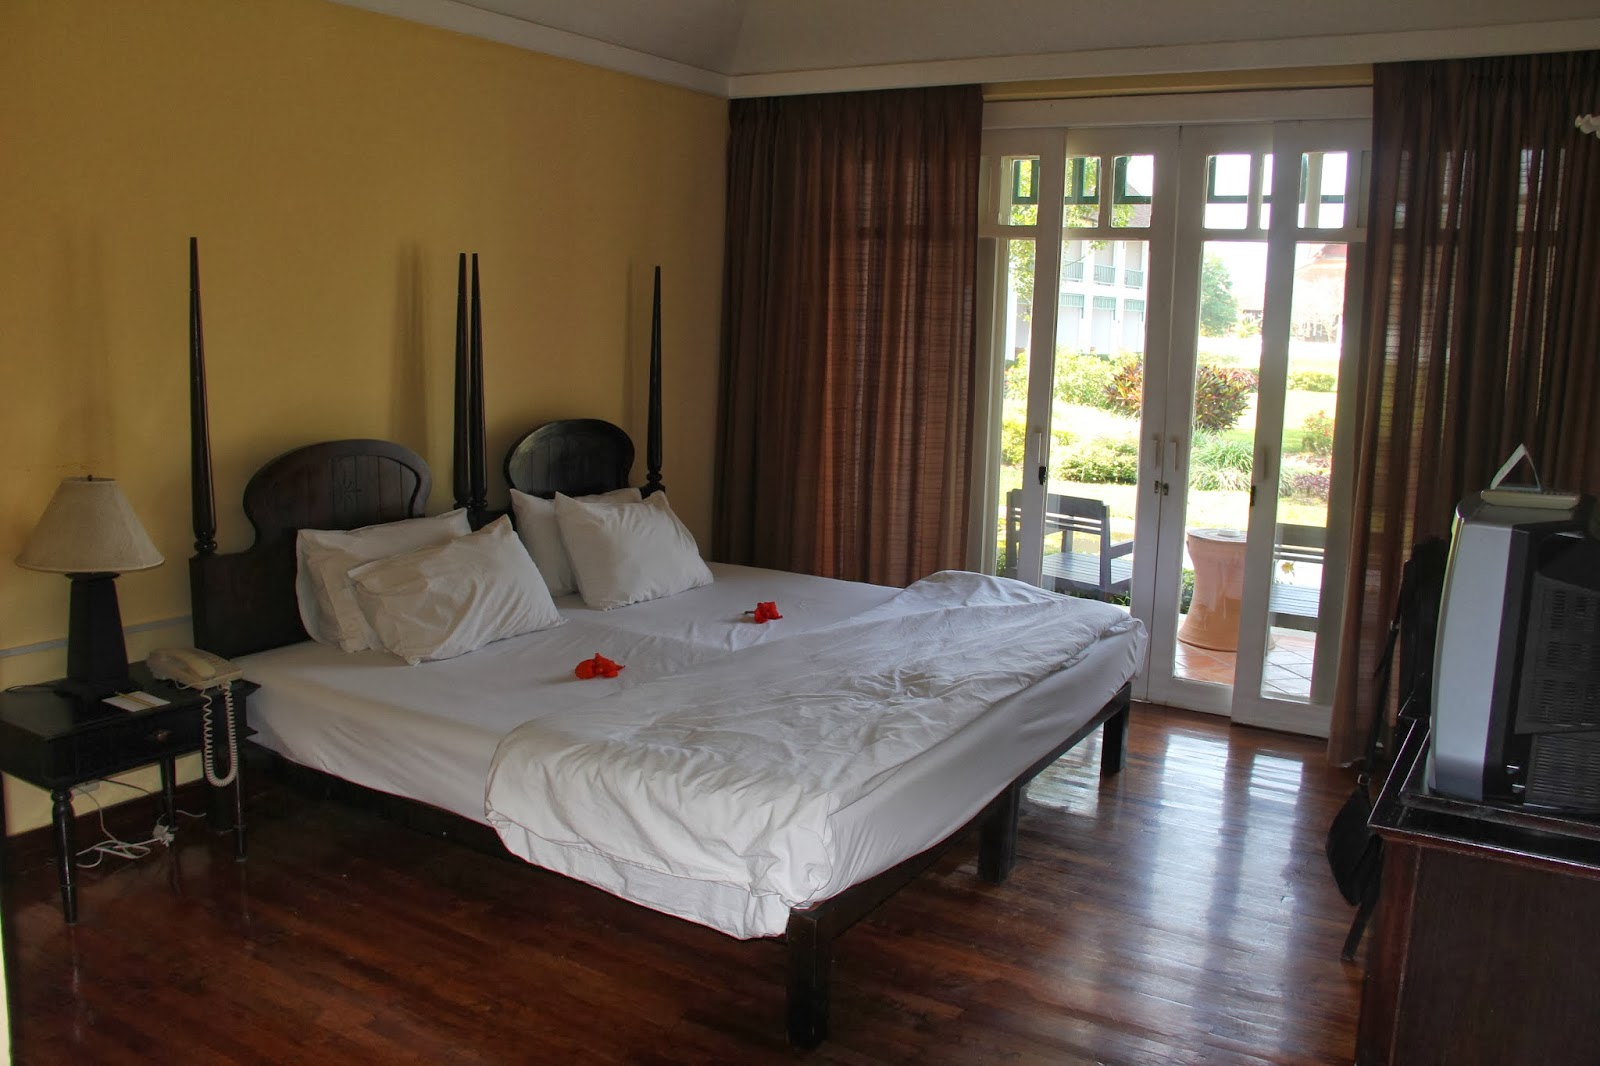 Our room at the Grand Luang Prabang Hotel-lovely!